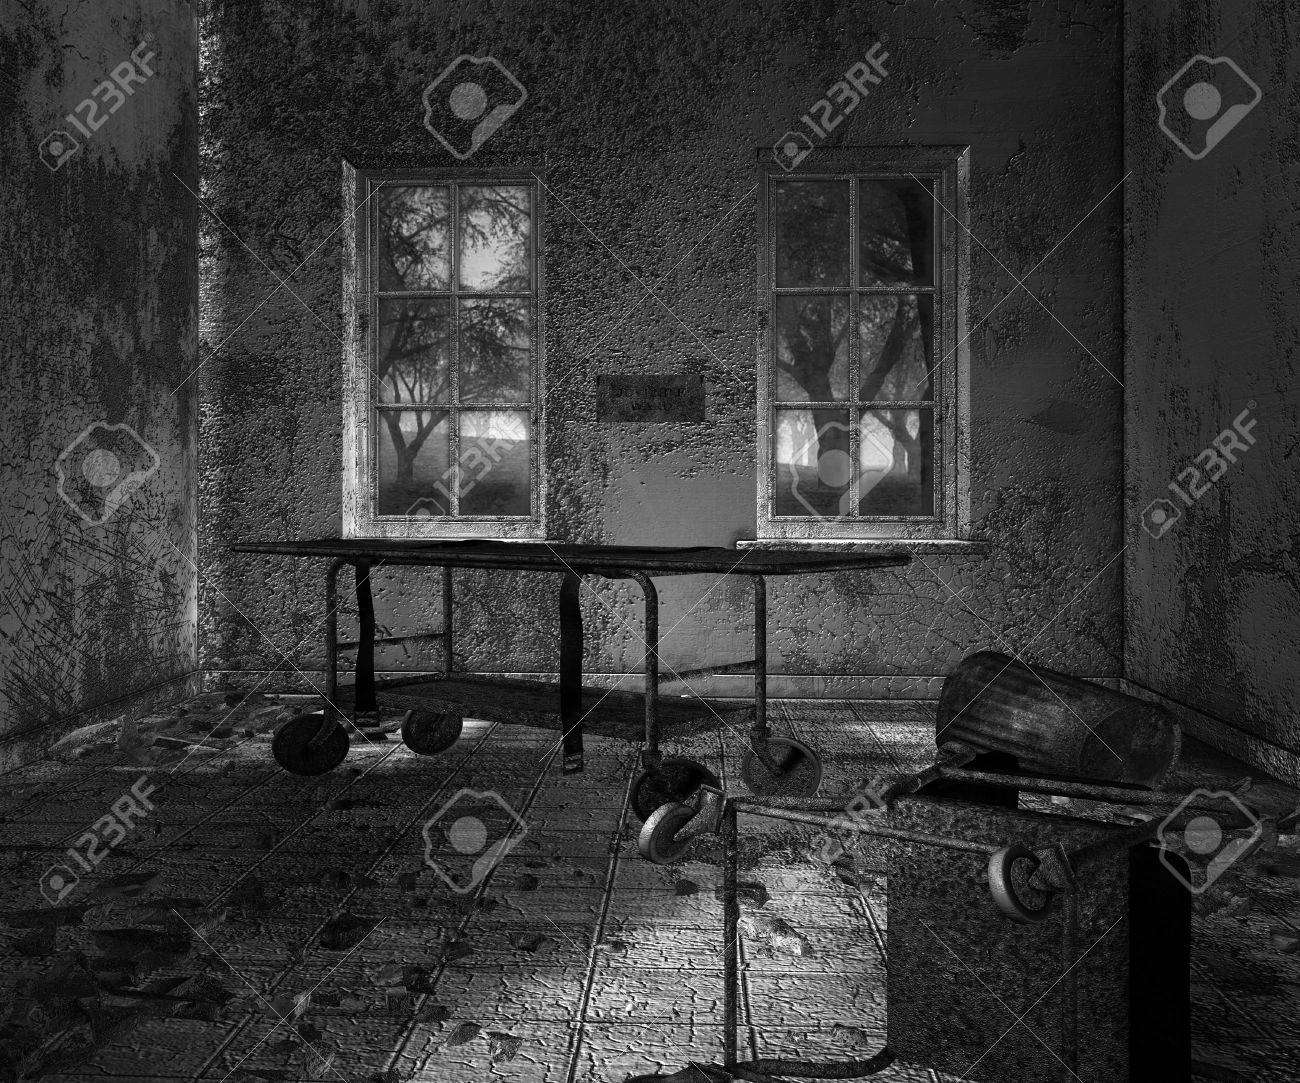 Dark Asylum Scary Interior Background Stock Photo